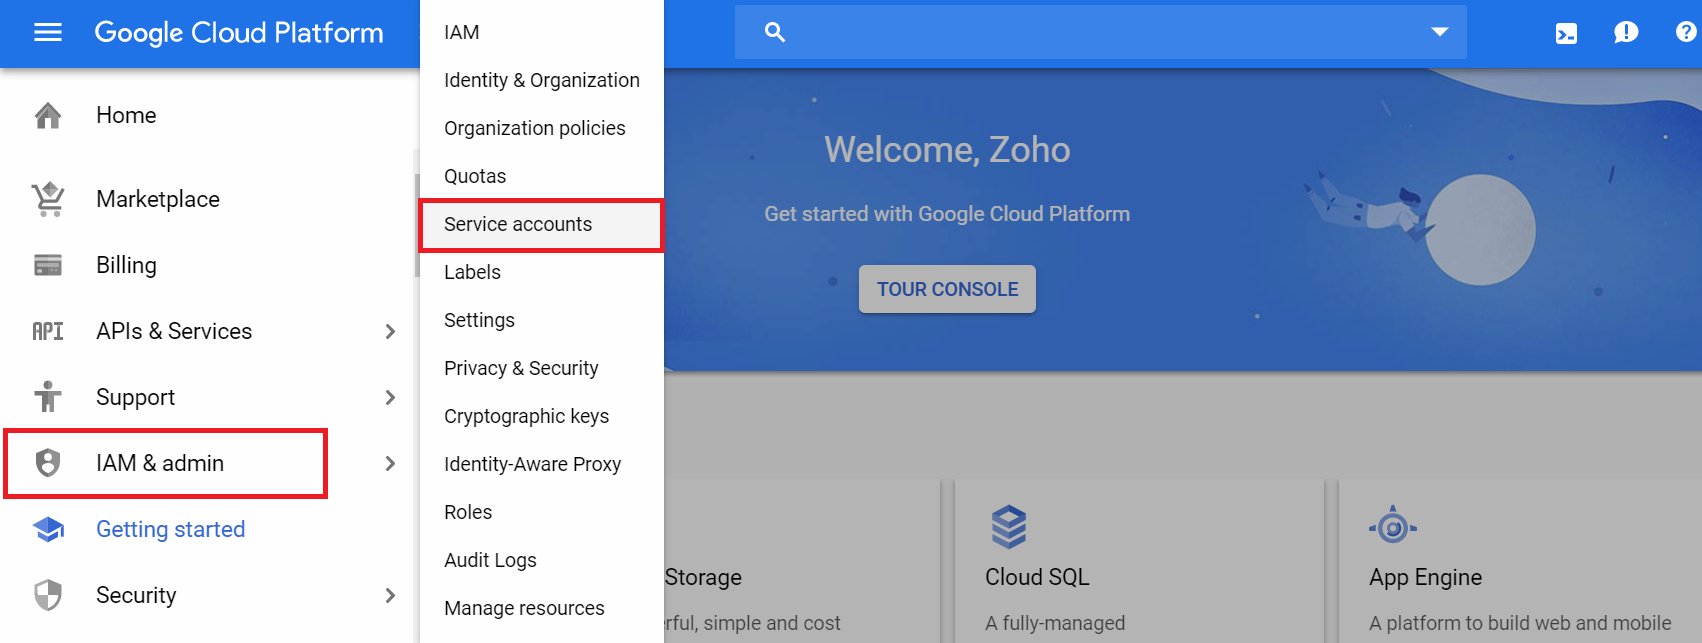 How to create a service account in the GCP console?